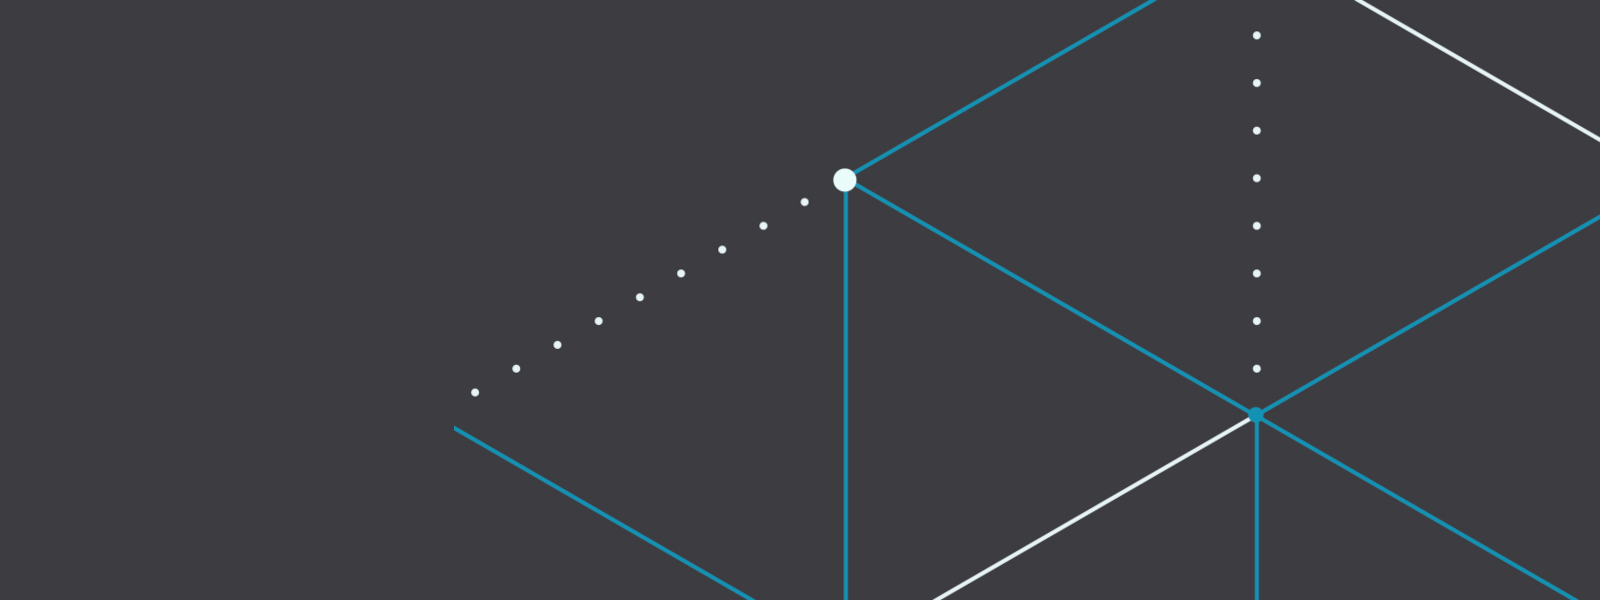 Illustration of solid and dotted lines on a dark grey background